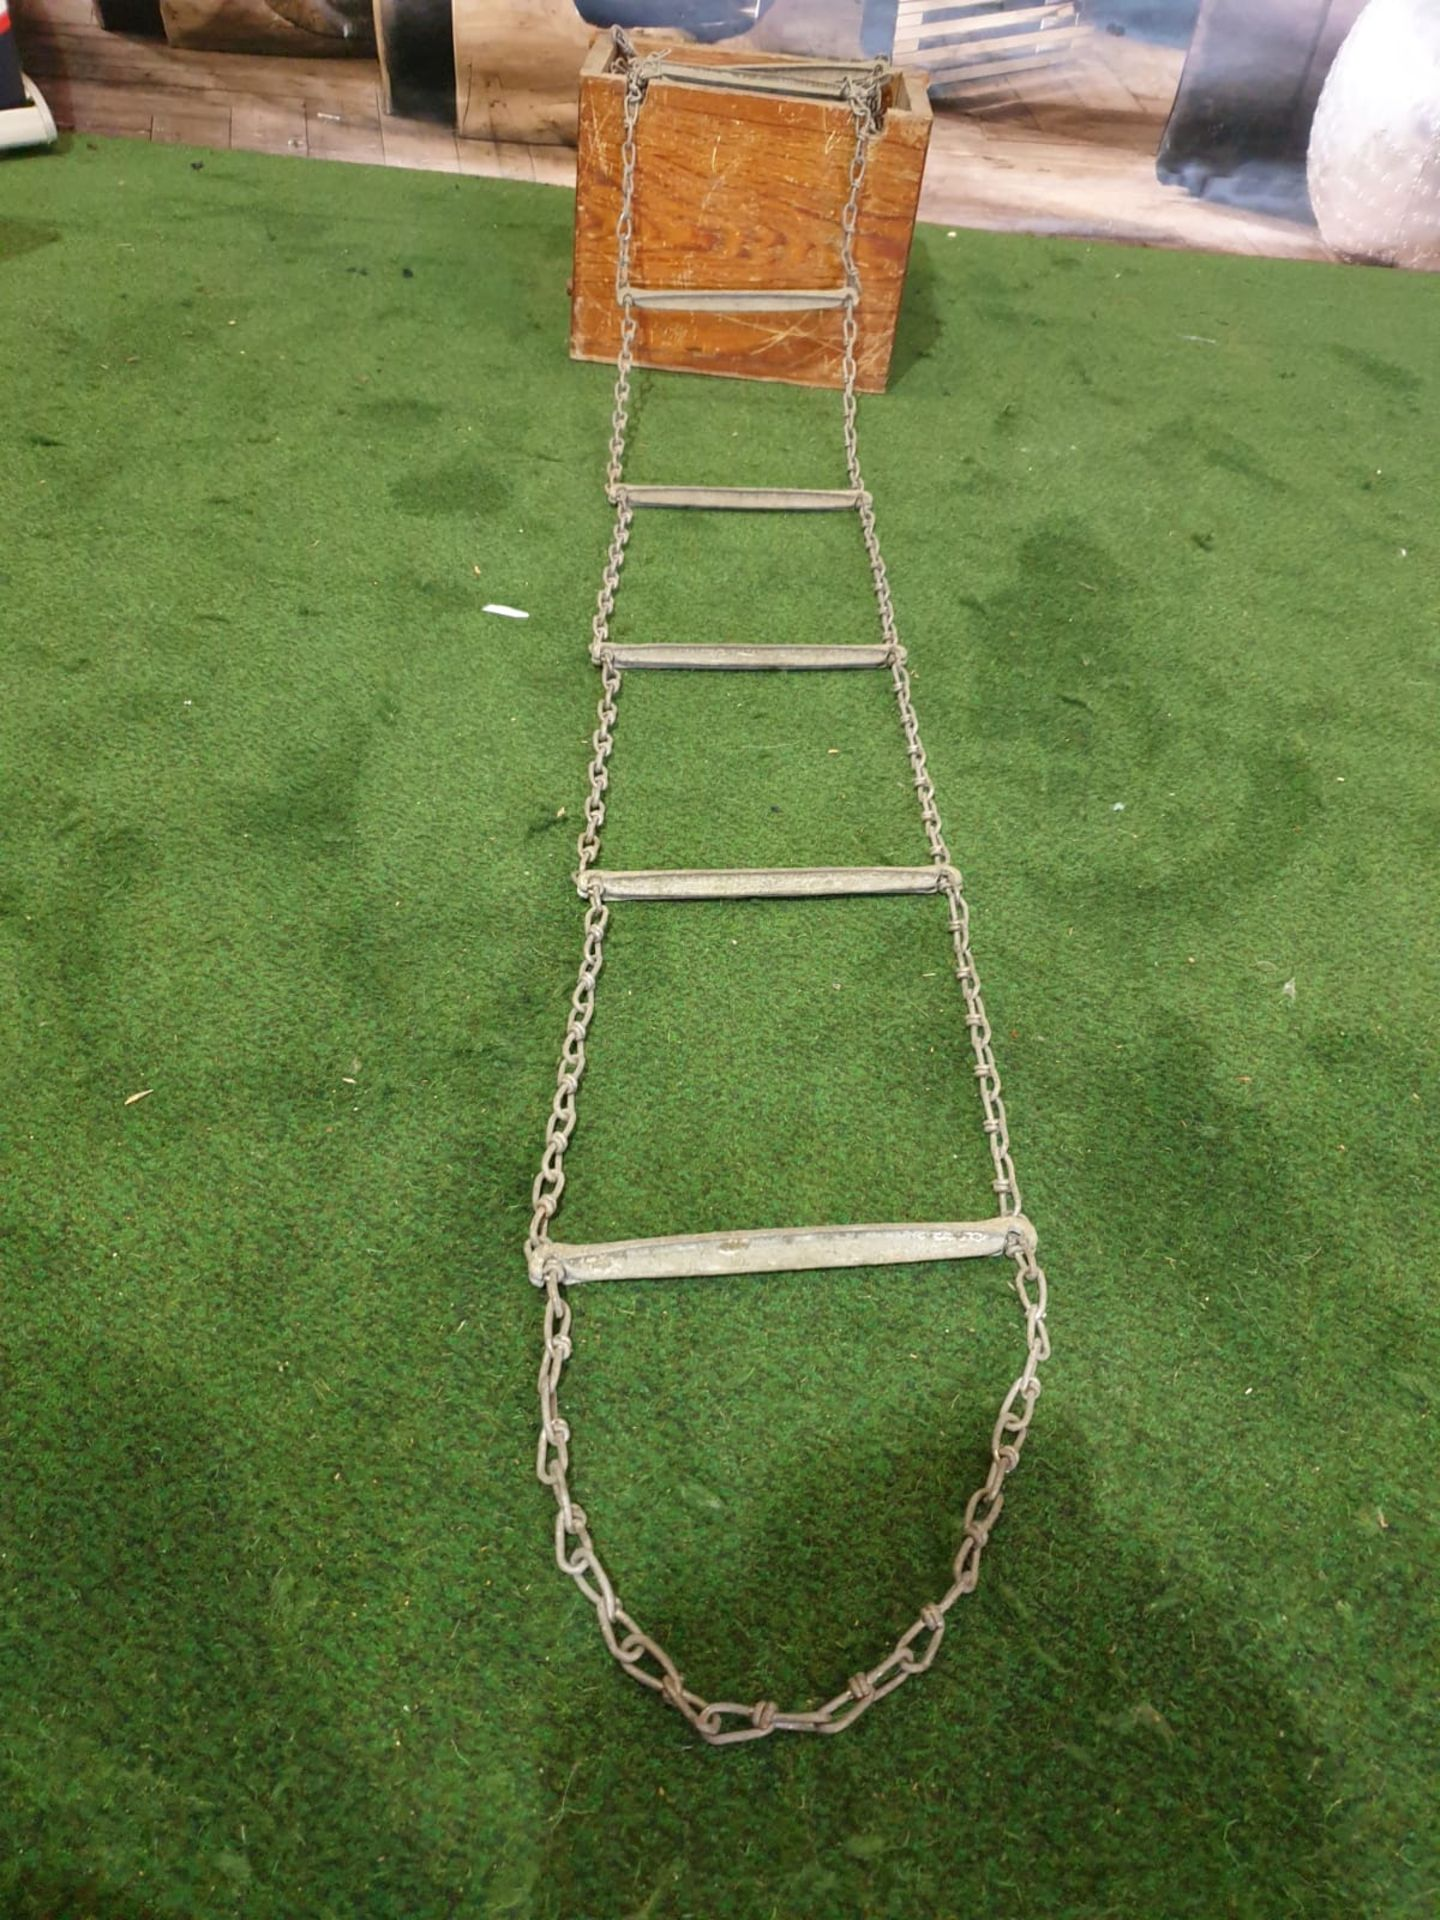 A vintage escape ladder in box 38 rungs of metal on linked chain approximately 10m in length in - Image 3 of 3